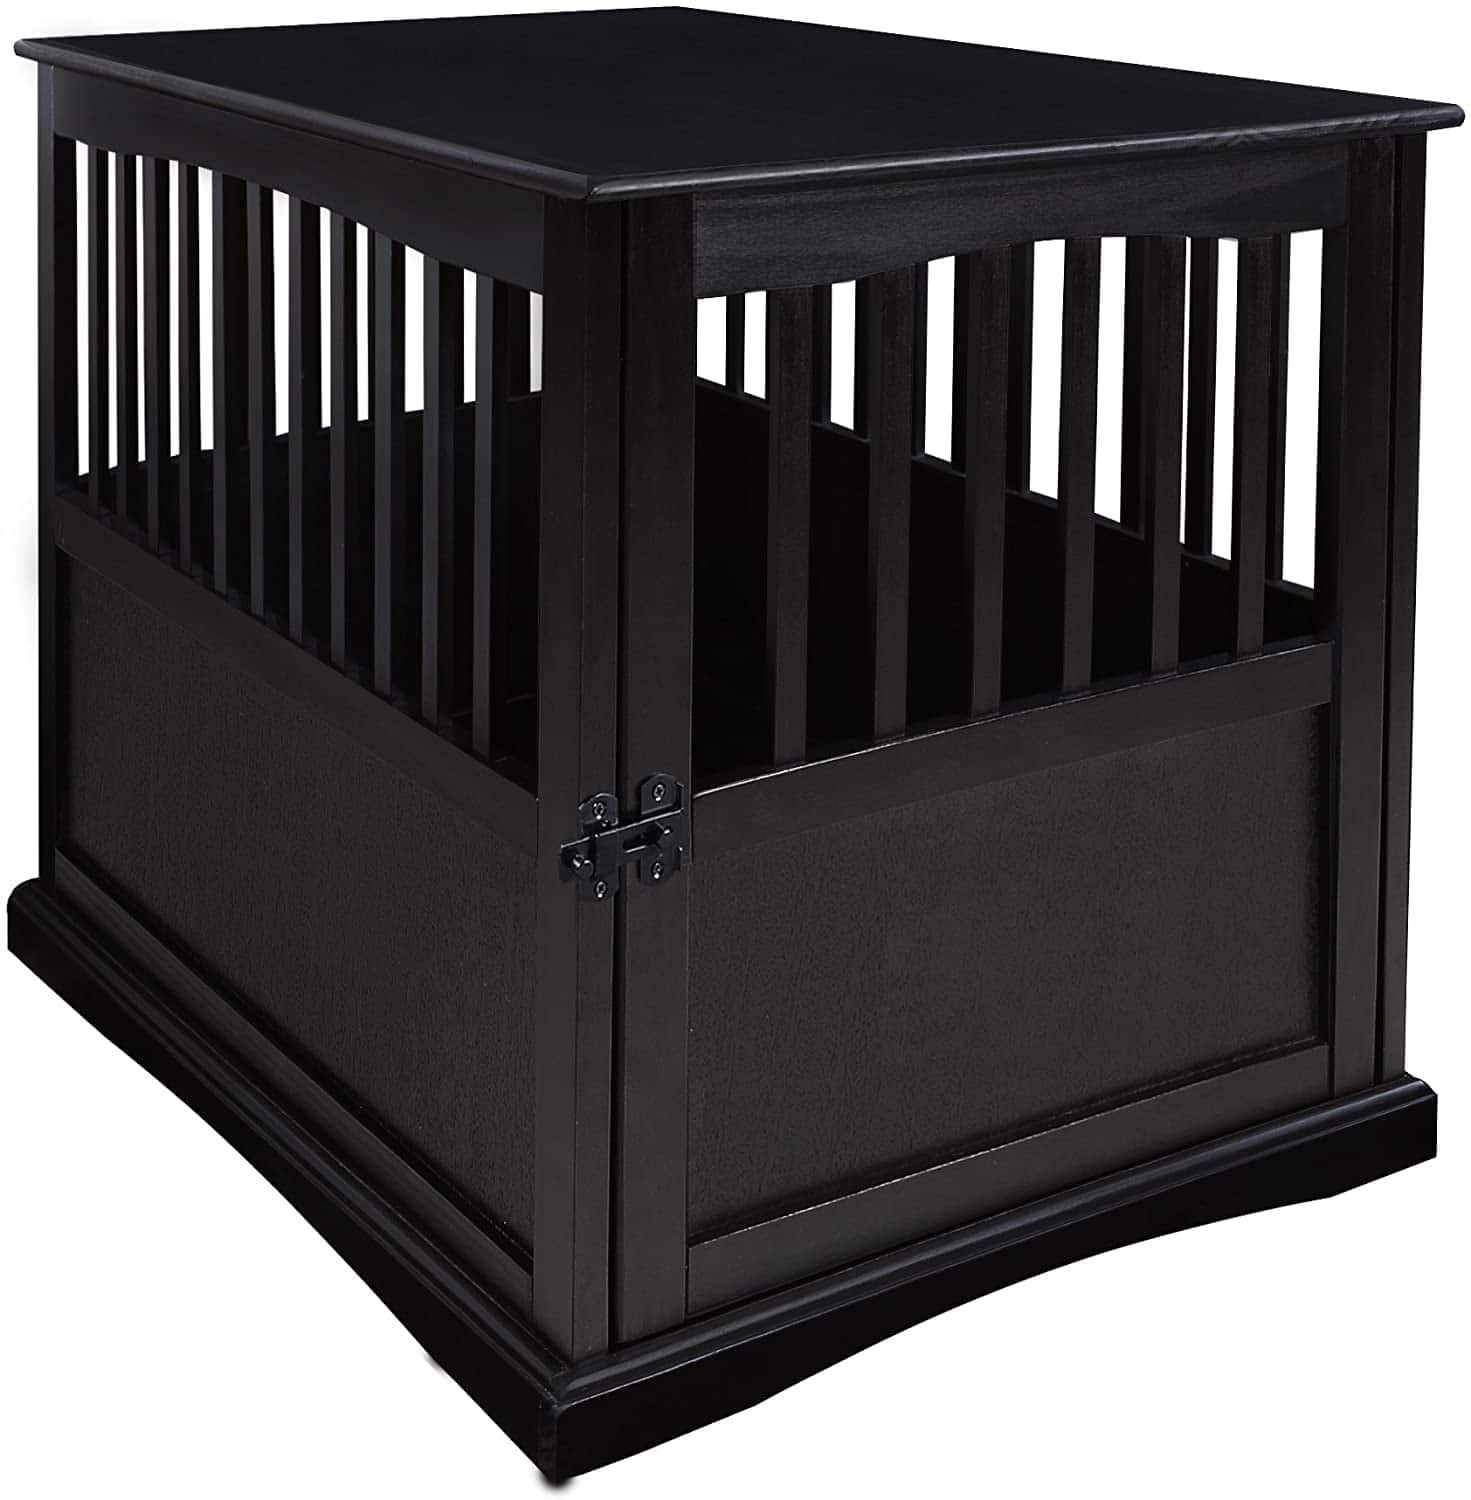 Casual Home Wooden End Table Pet Crate (Black) $83.31 + Free Shipping ~ Amazon or Chewy.com